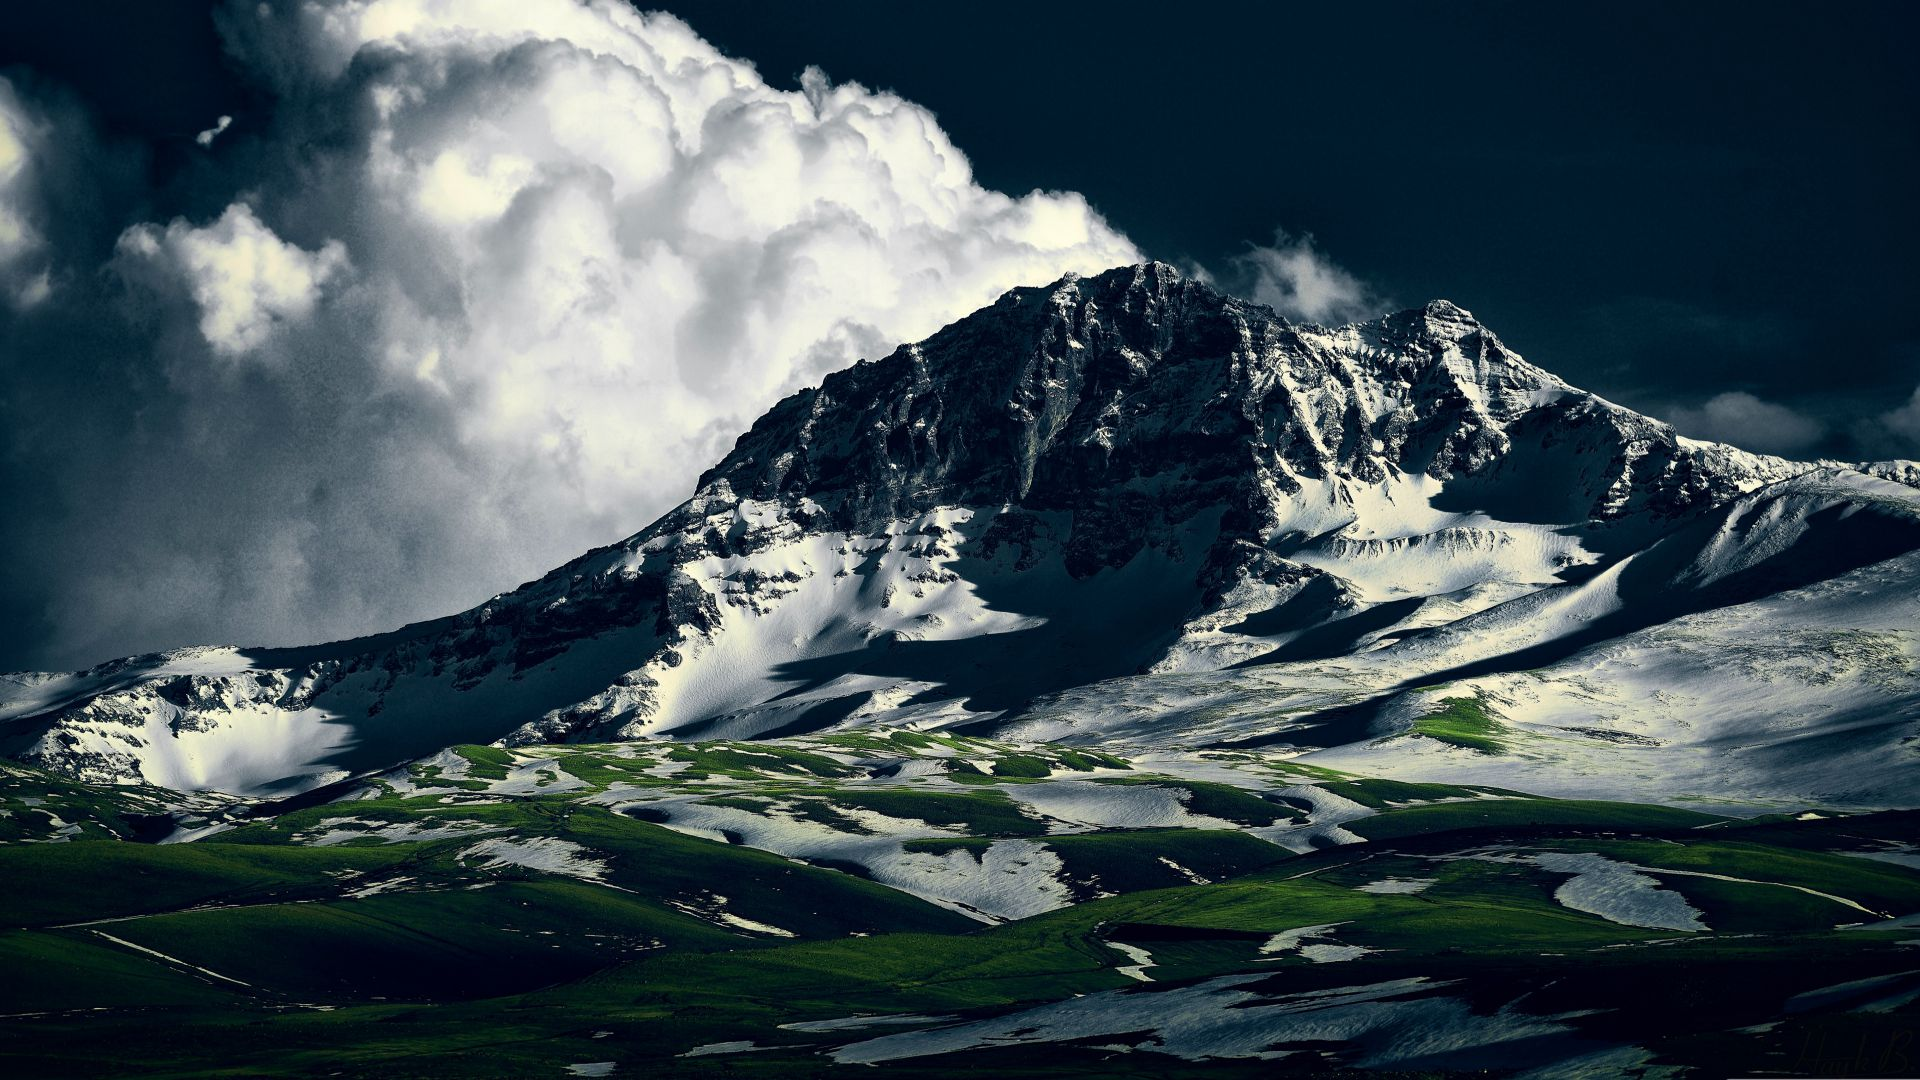 Aragats, 5k, 4k wallpaper, Armenia, mountains, clouds (horizontal)